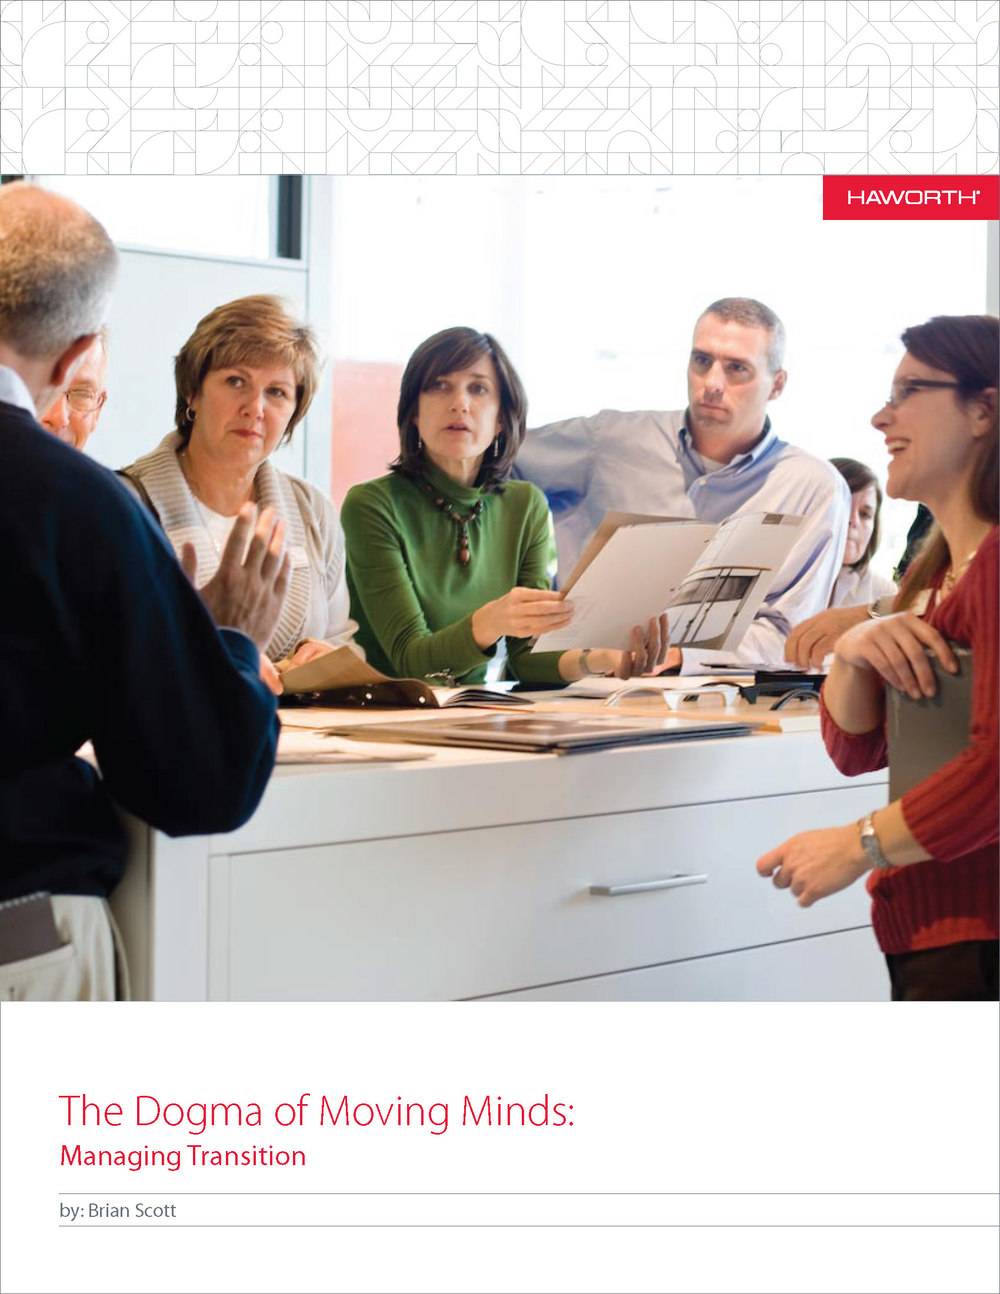 The Dogma of Moving Minds: Managing Transition: courtesy of Haworth